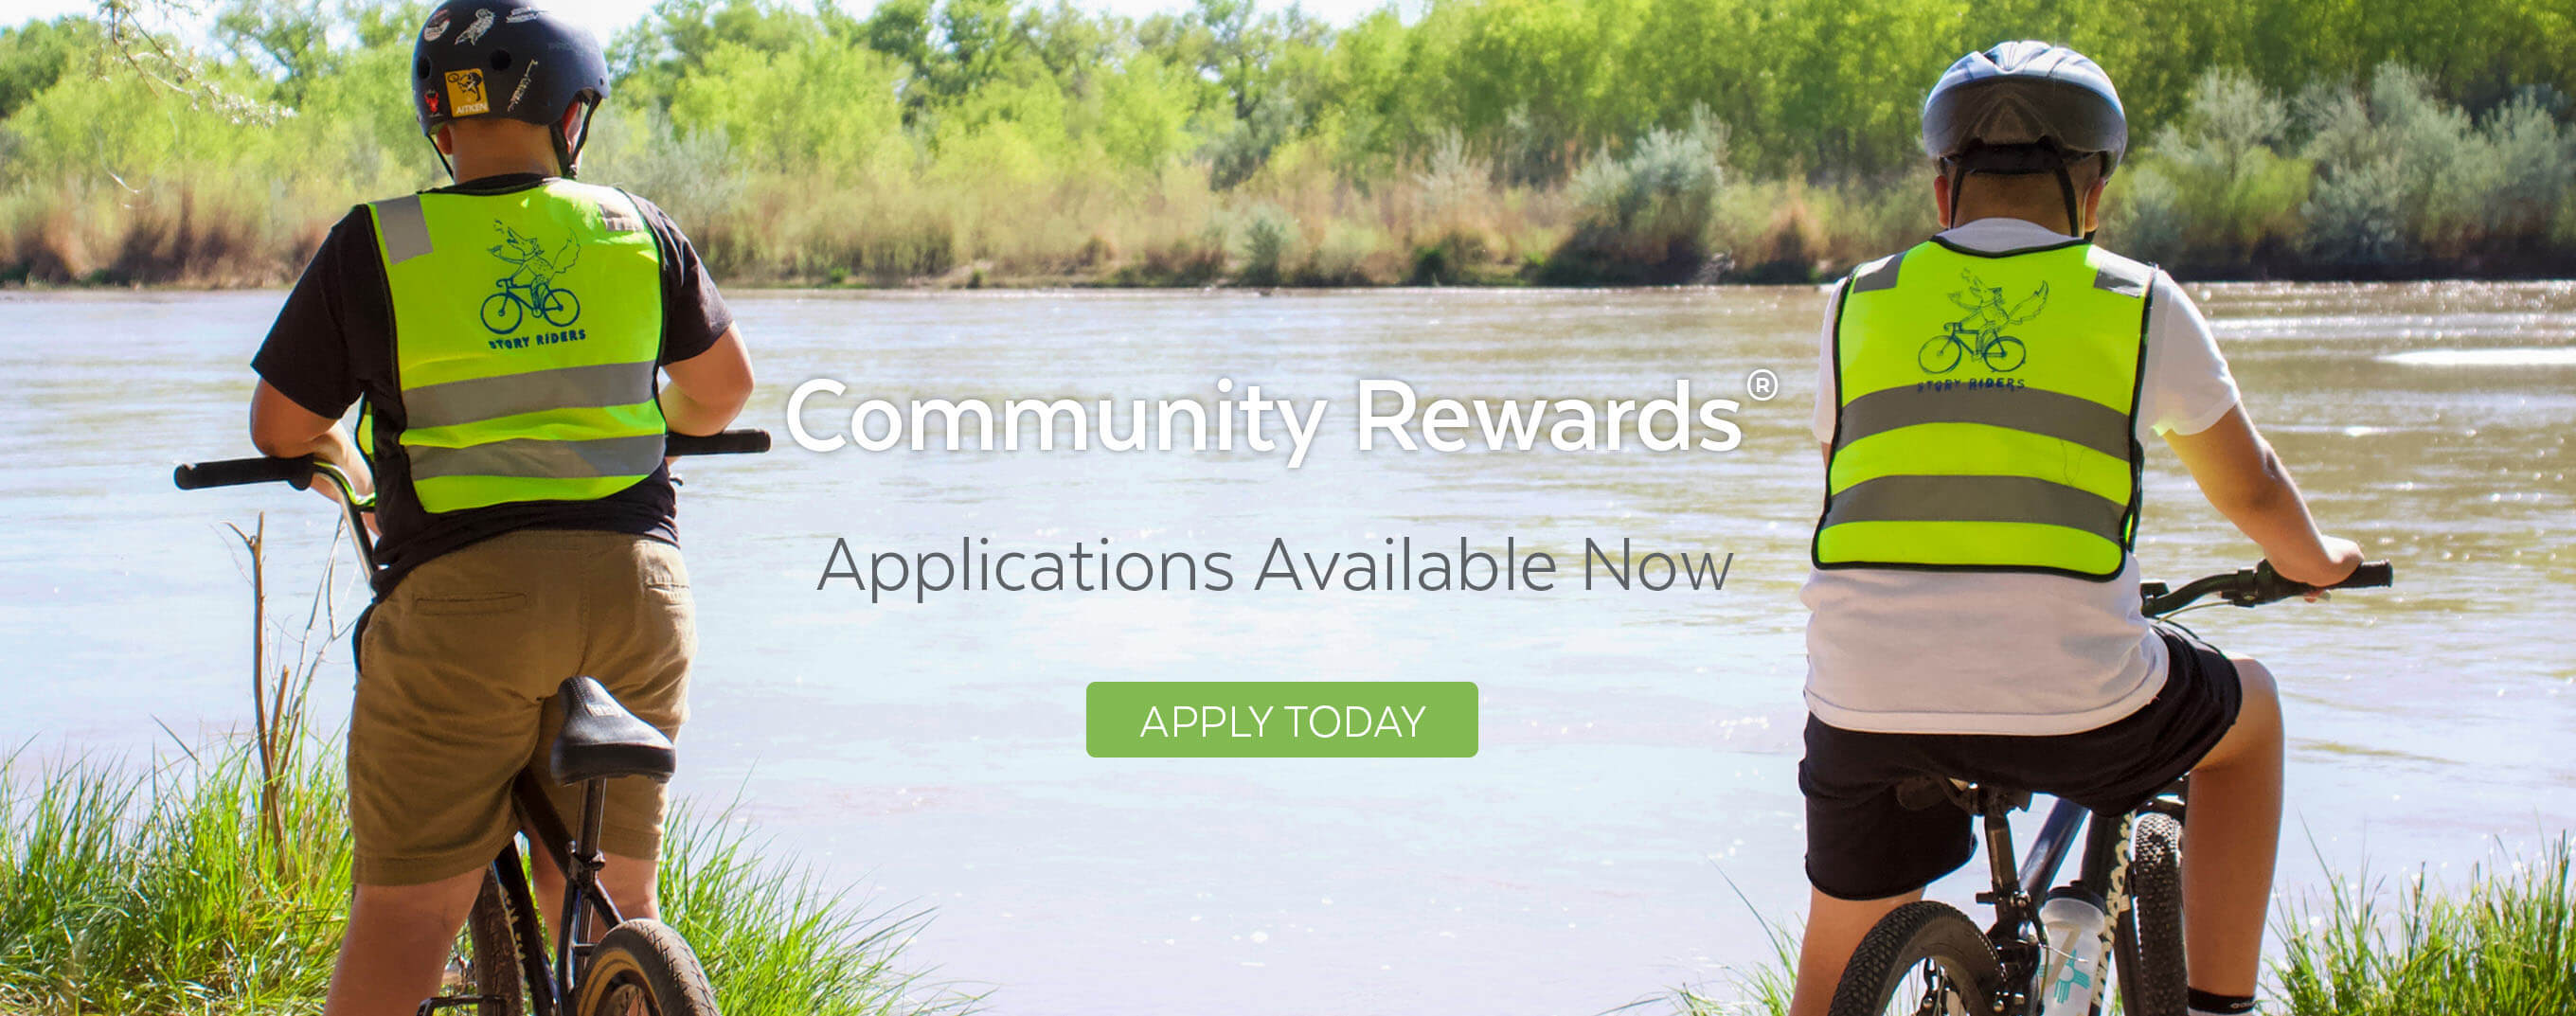 Apply for a Community Rewards grant.